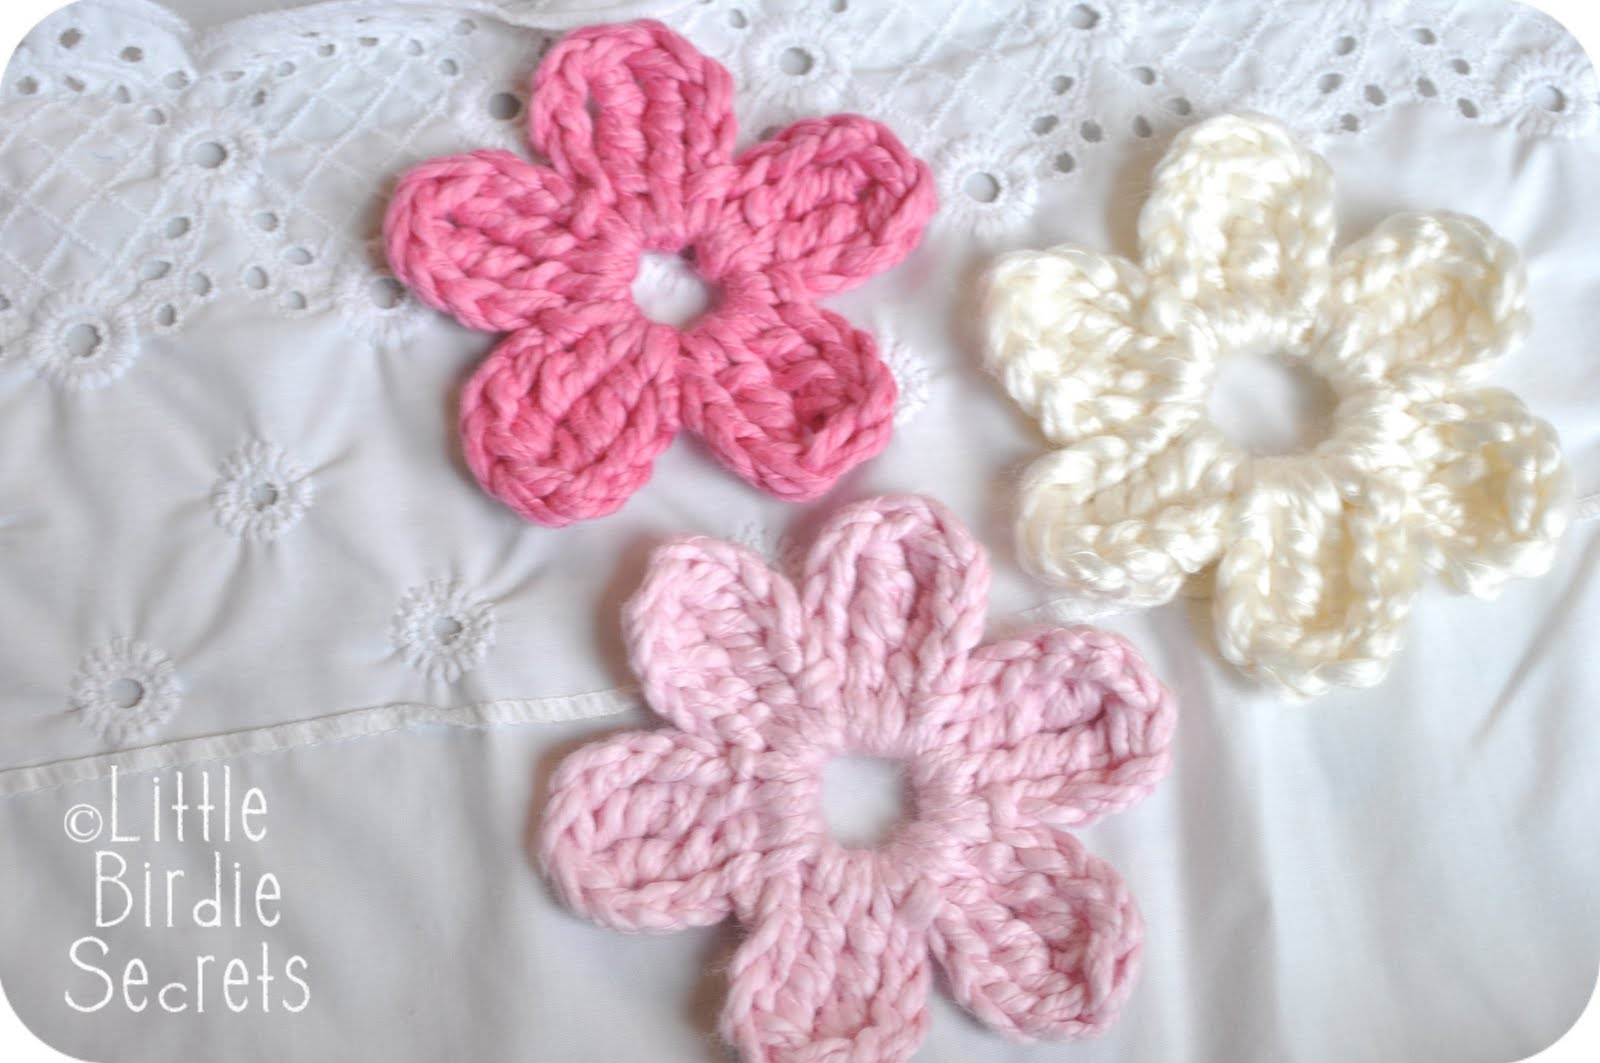 Crochet Patterns How To : baby hat and bootie patterns in the shop {plus a free flower pattern ...